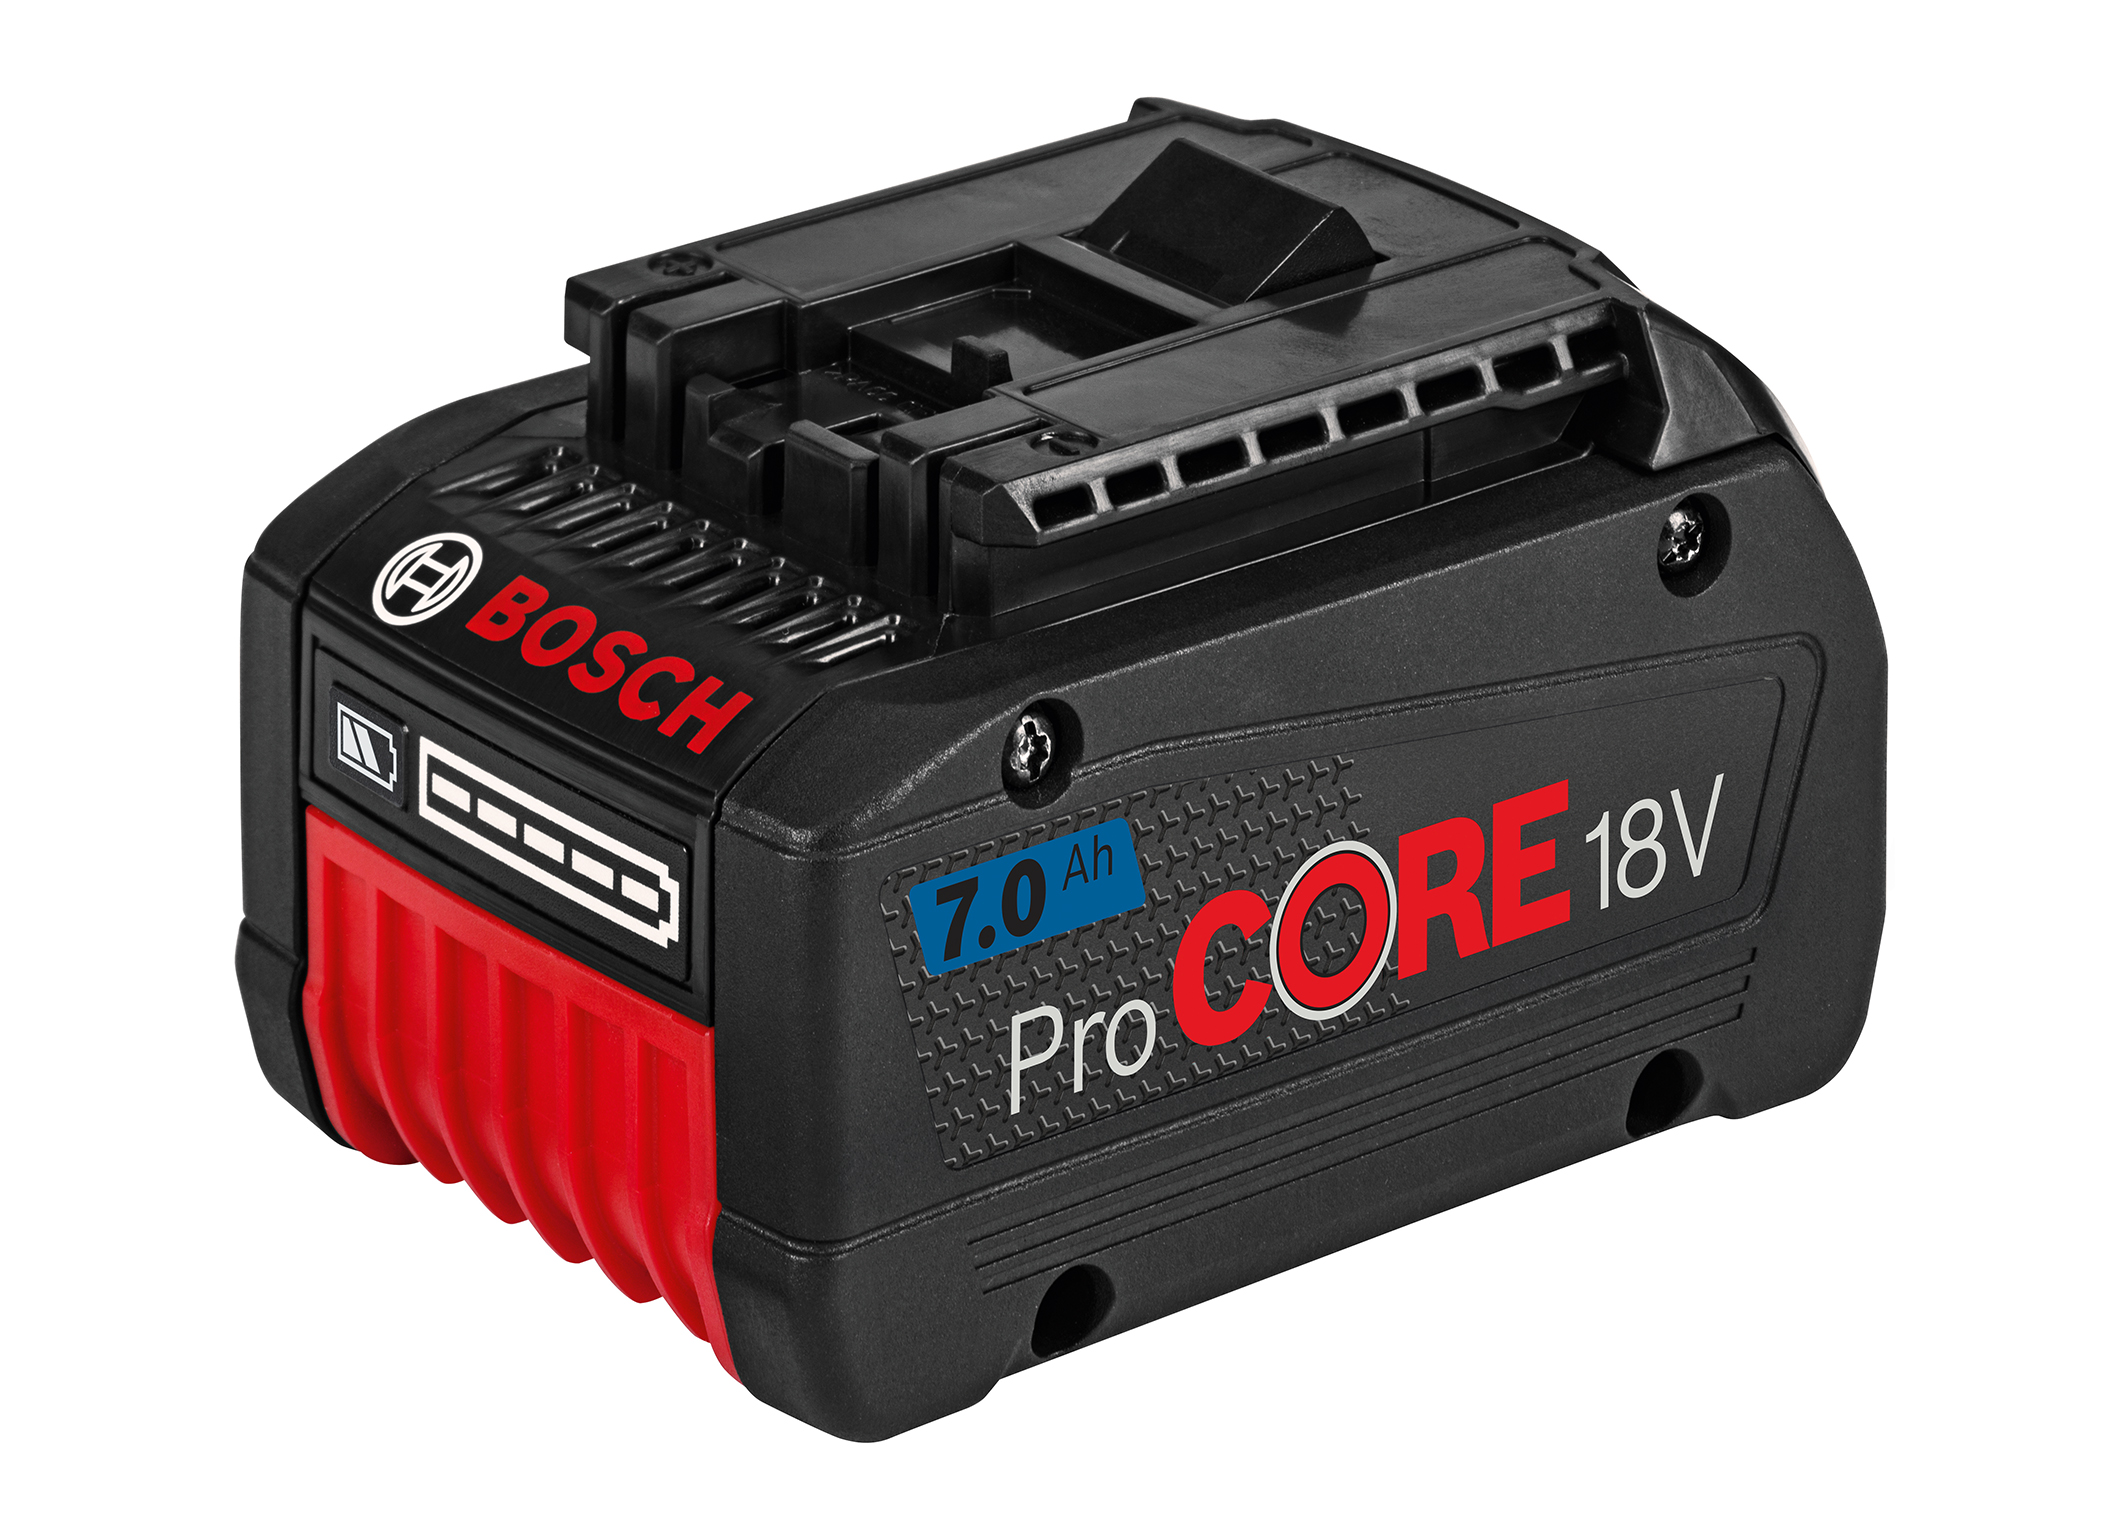 More power for professionals: Bosch ProCore 18V 7.0 Ah high-performance battery